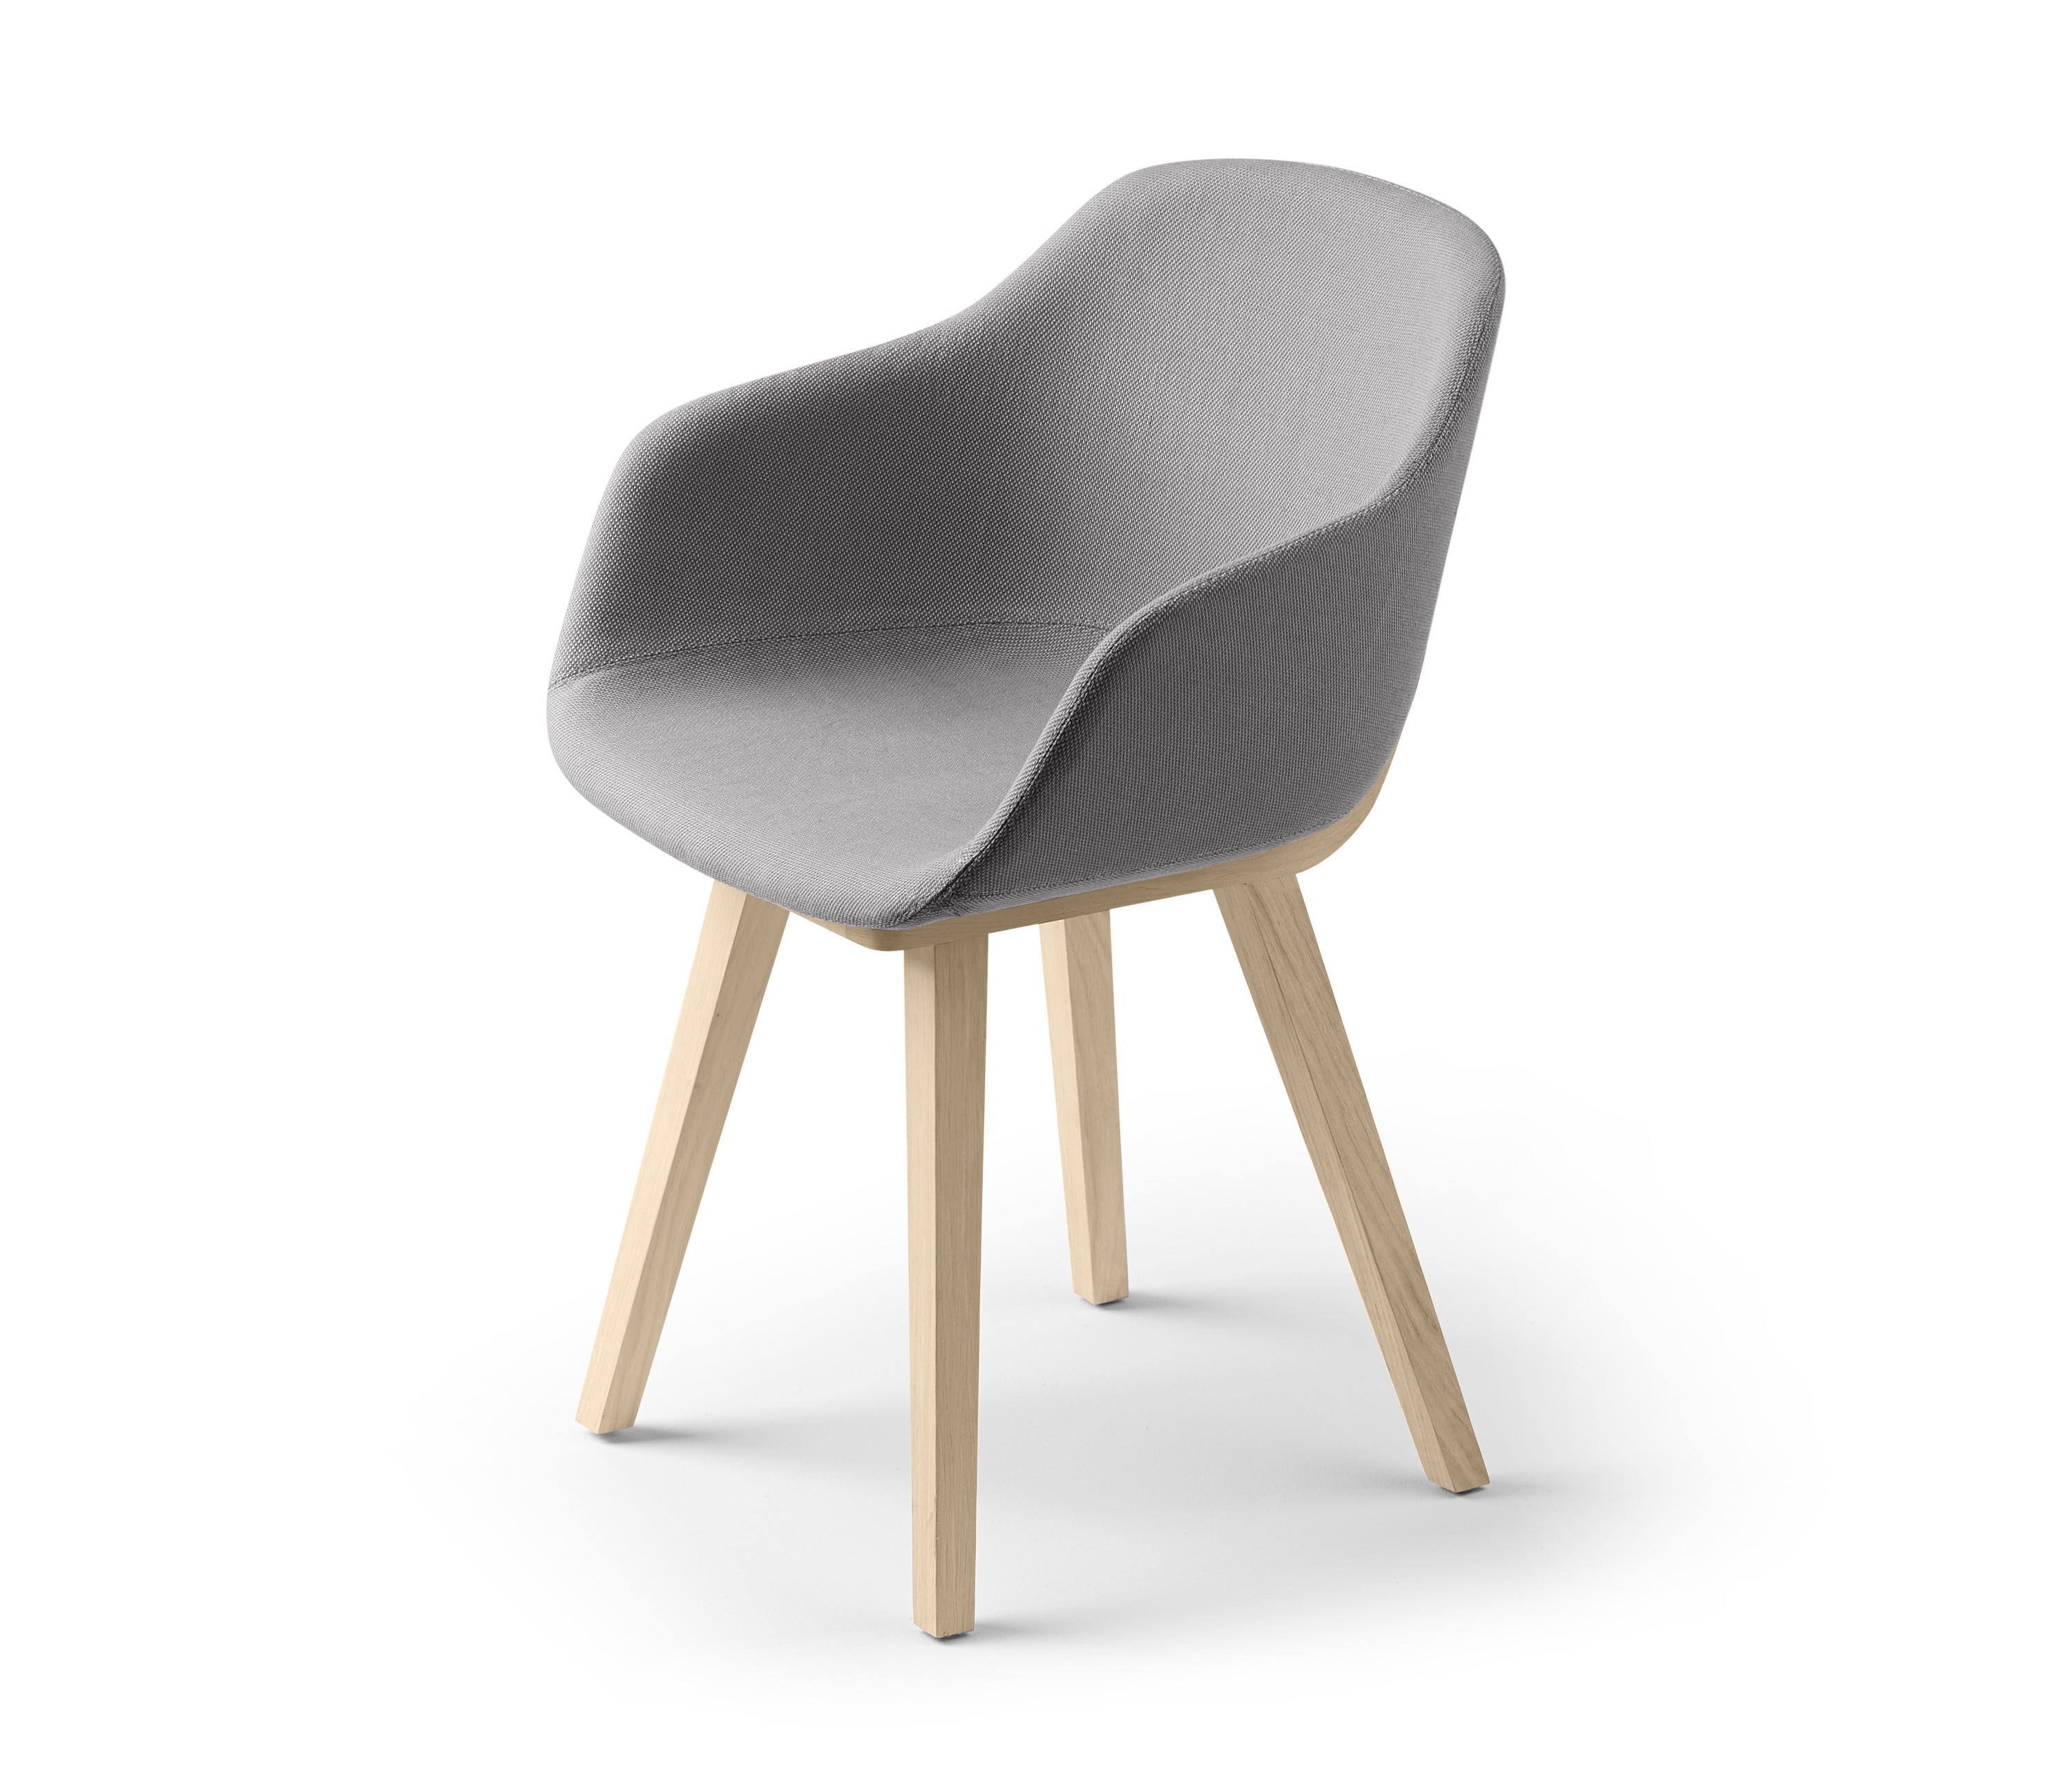 Modern Chairs Top 5 Luxury Fabric Brands Exhibiting At: KUSKOA BI CHAIR - Chairs From Alki